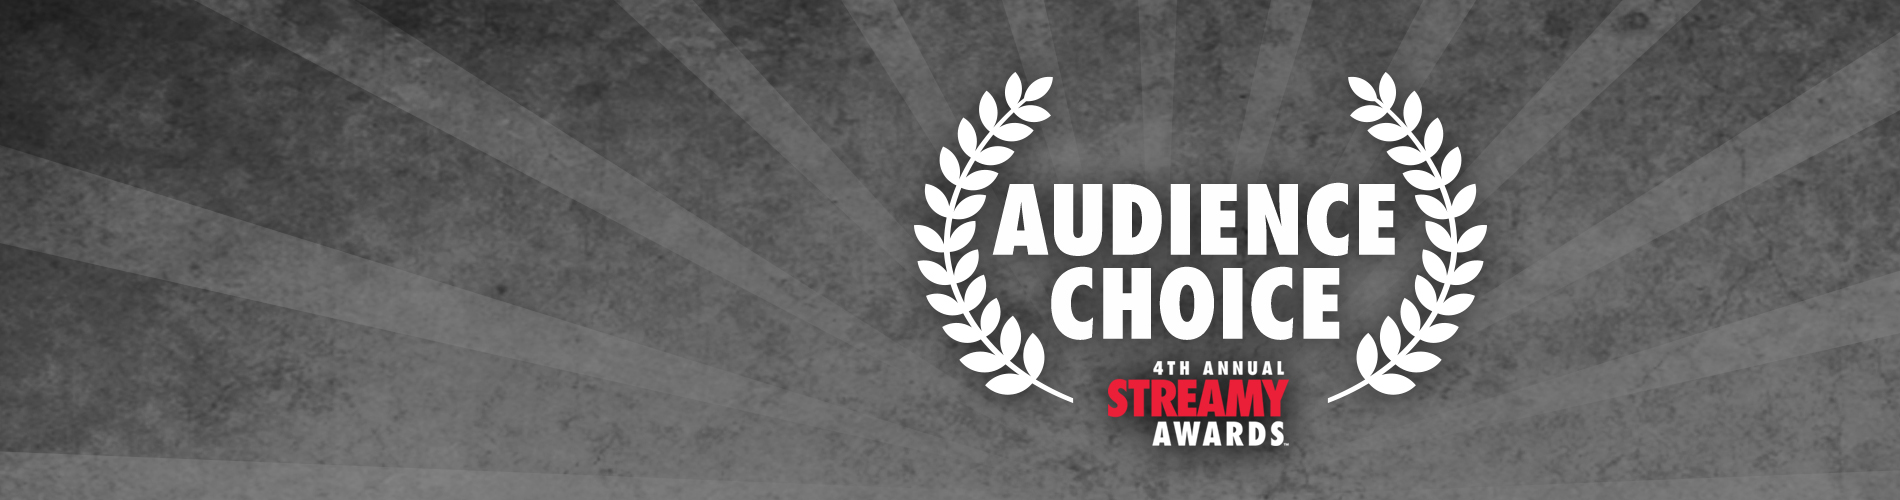 audiencechoice_slider